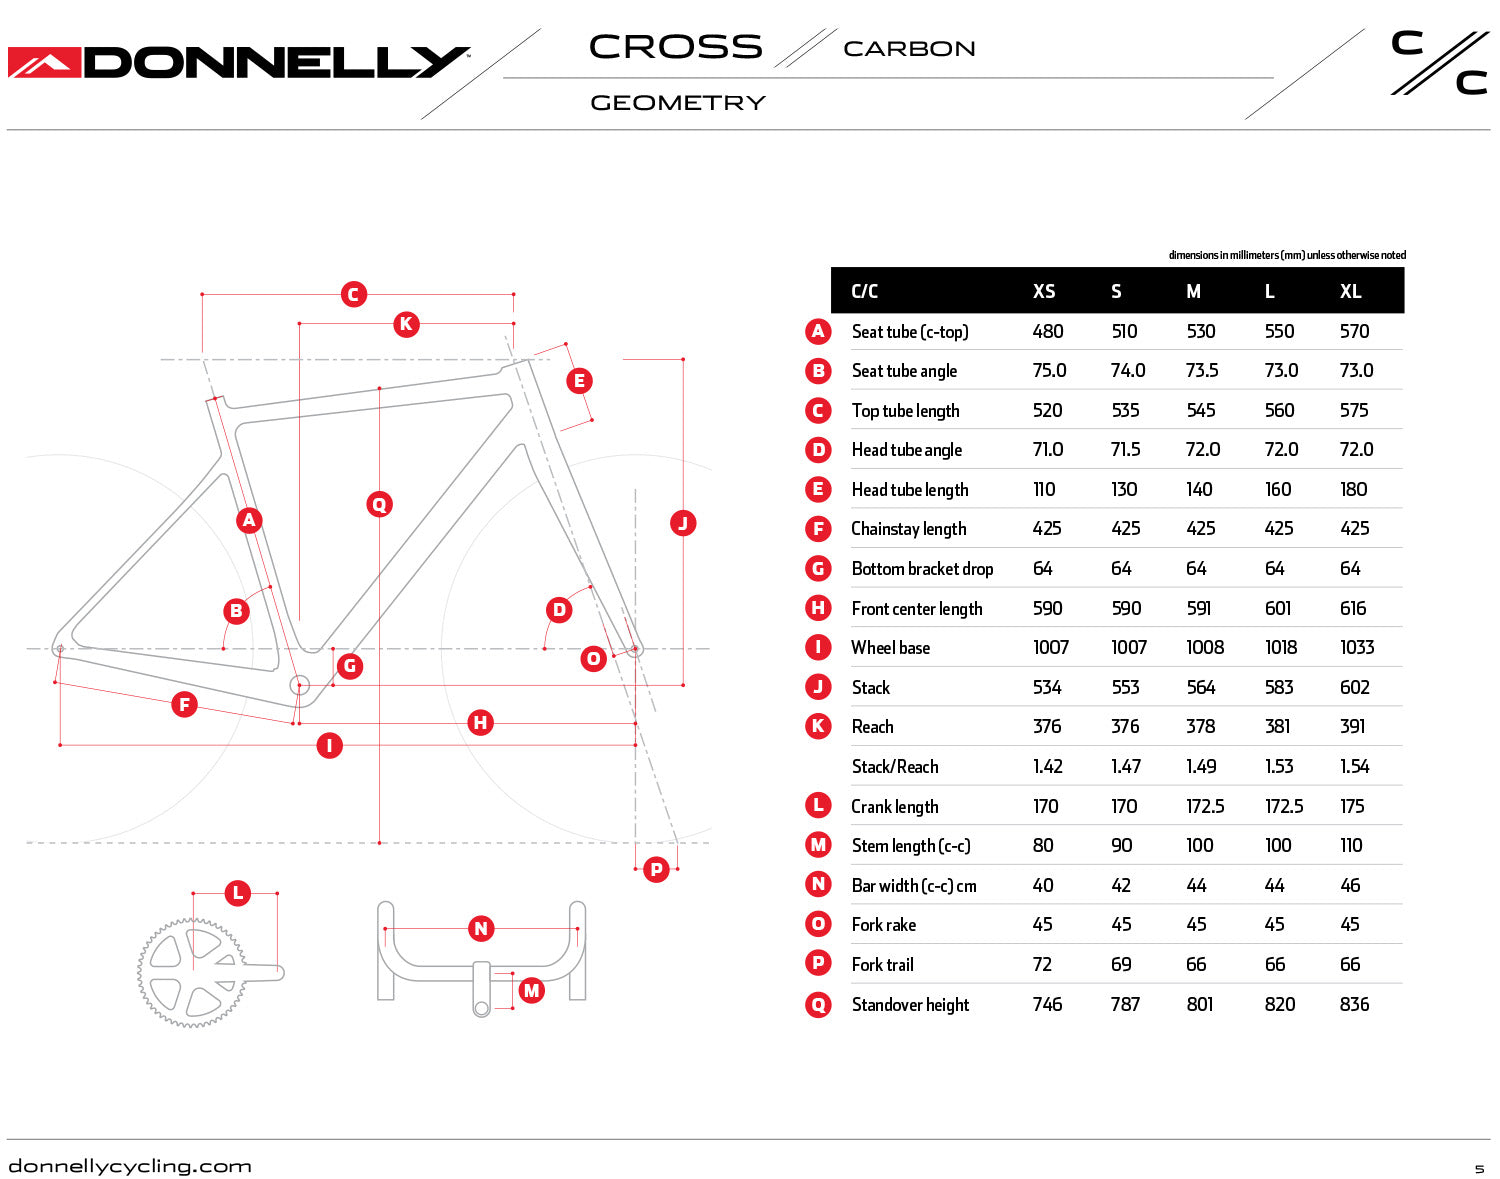 Donnelly C//C Cross Carbon cyclocross bike geometry chart